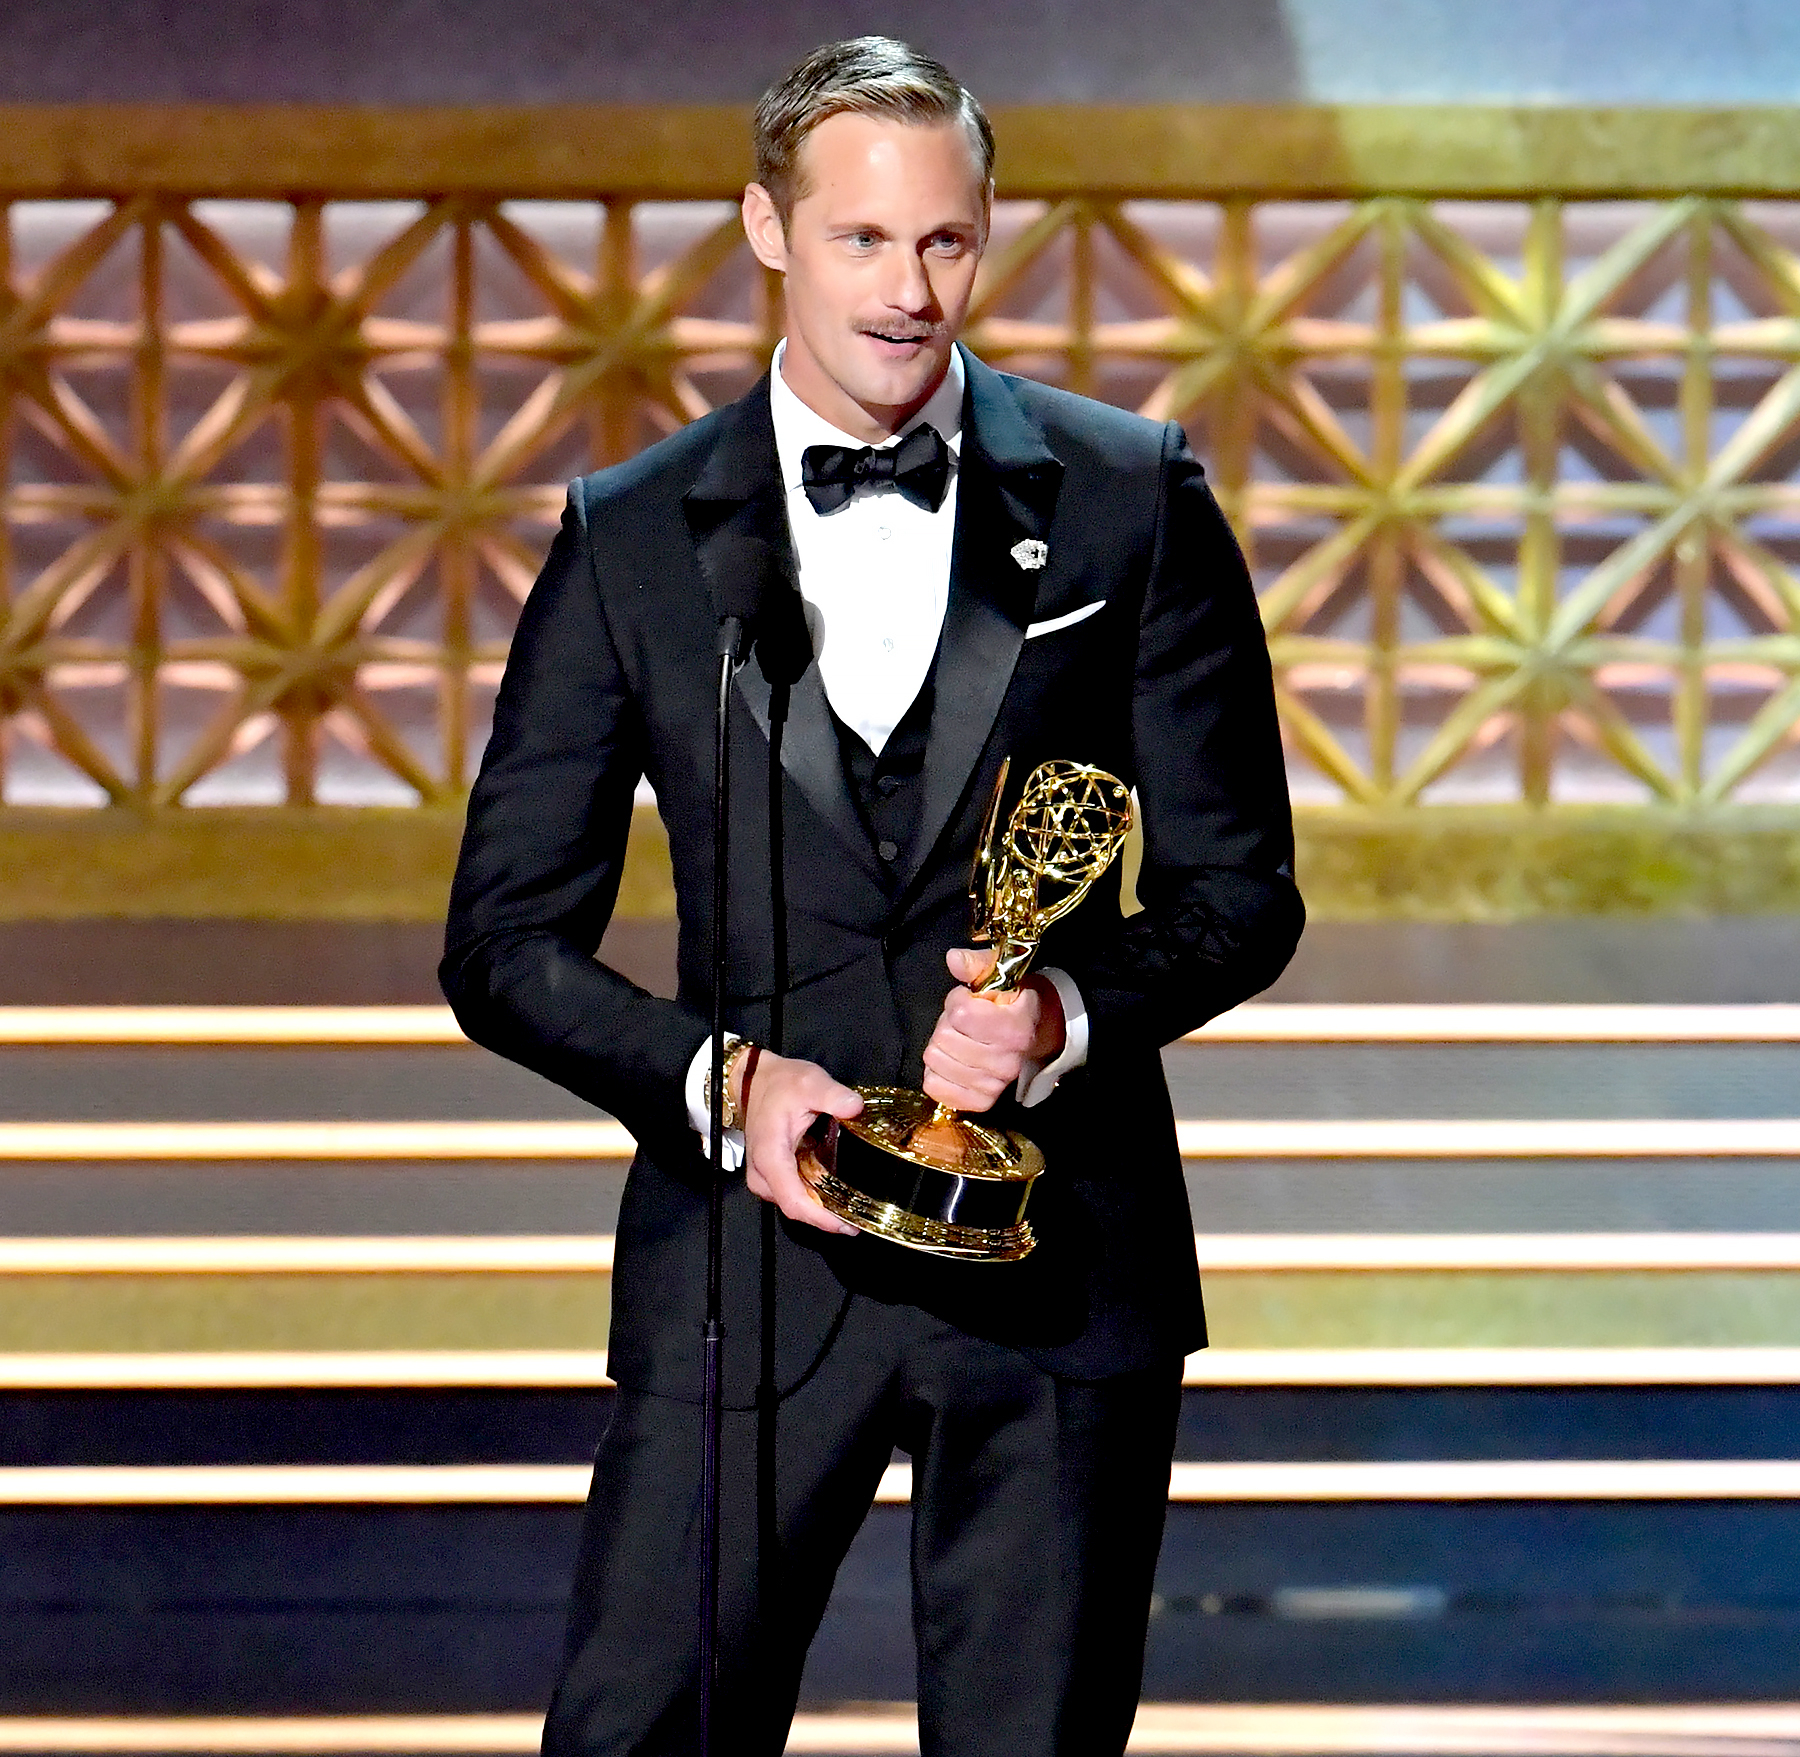 Alexander Skarsgard accepts the Outstanding Supporting Actor in a Limited Series or Movie award for 'Big Little Lies' onstage during the 69th Annual Primetime Emmy Awards at Microsoft Theater on September 17, 2017 in Los Angeles, California.